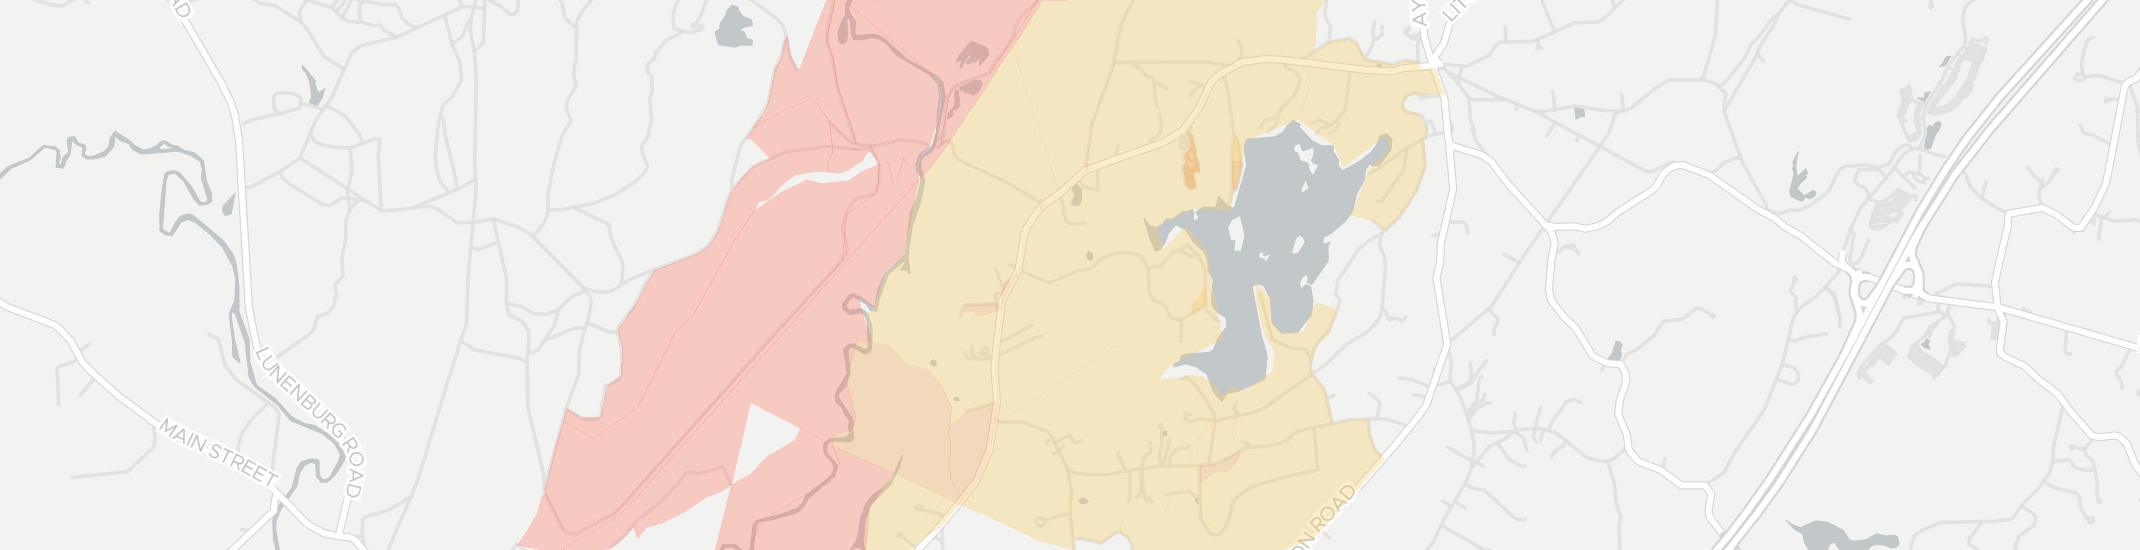 Still River Internet Competition Map. Click for interactive map.